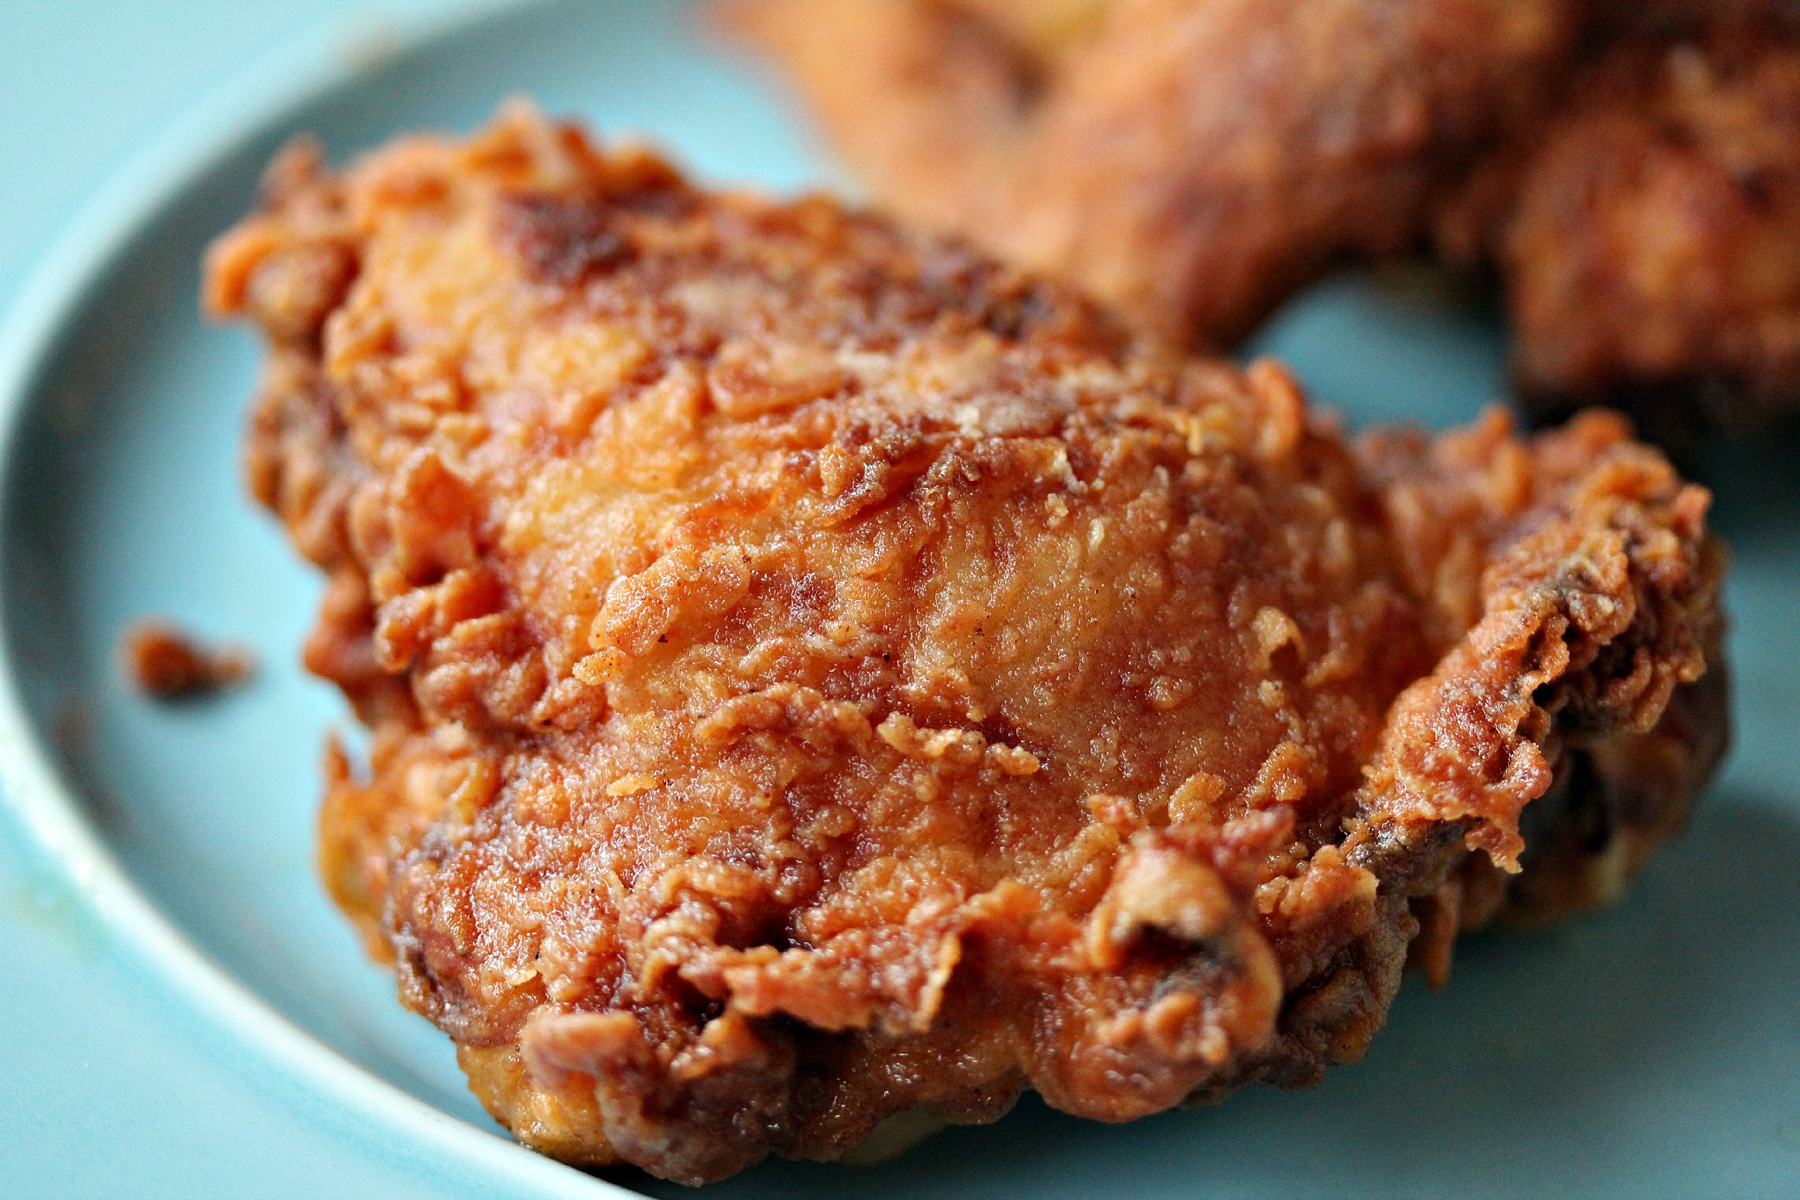 How to Make Popeye's Spicy Chicken Recipe